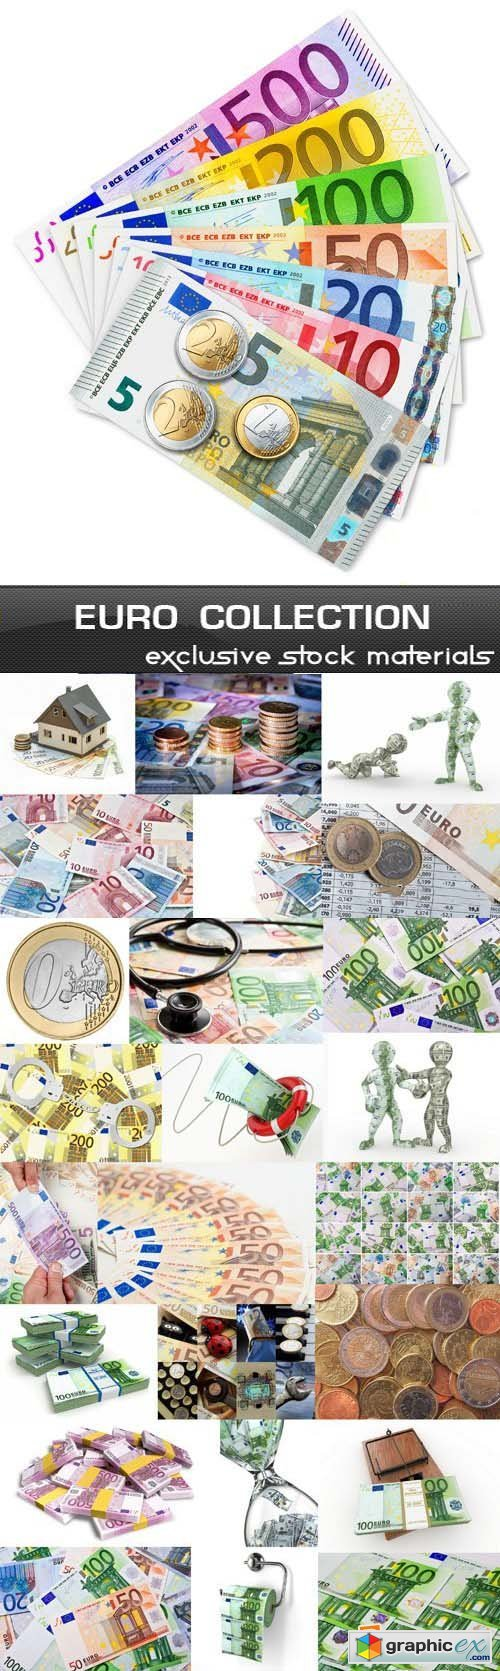 Euro Collection 25xJPG